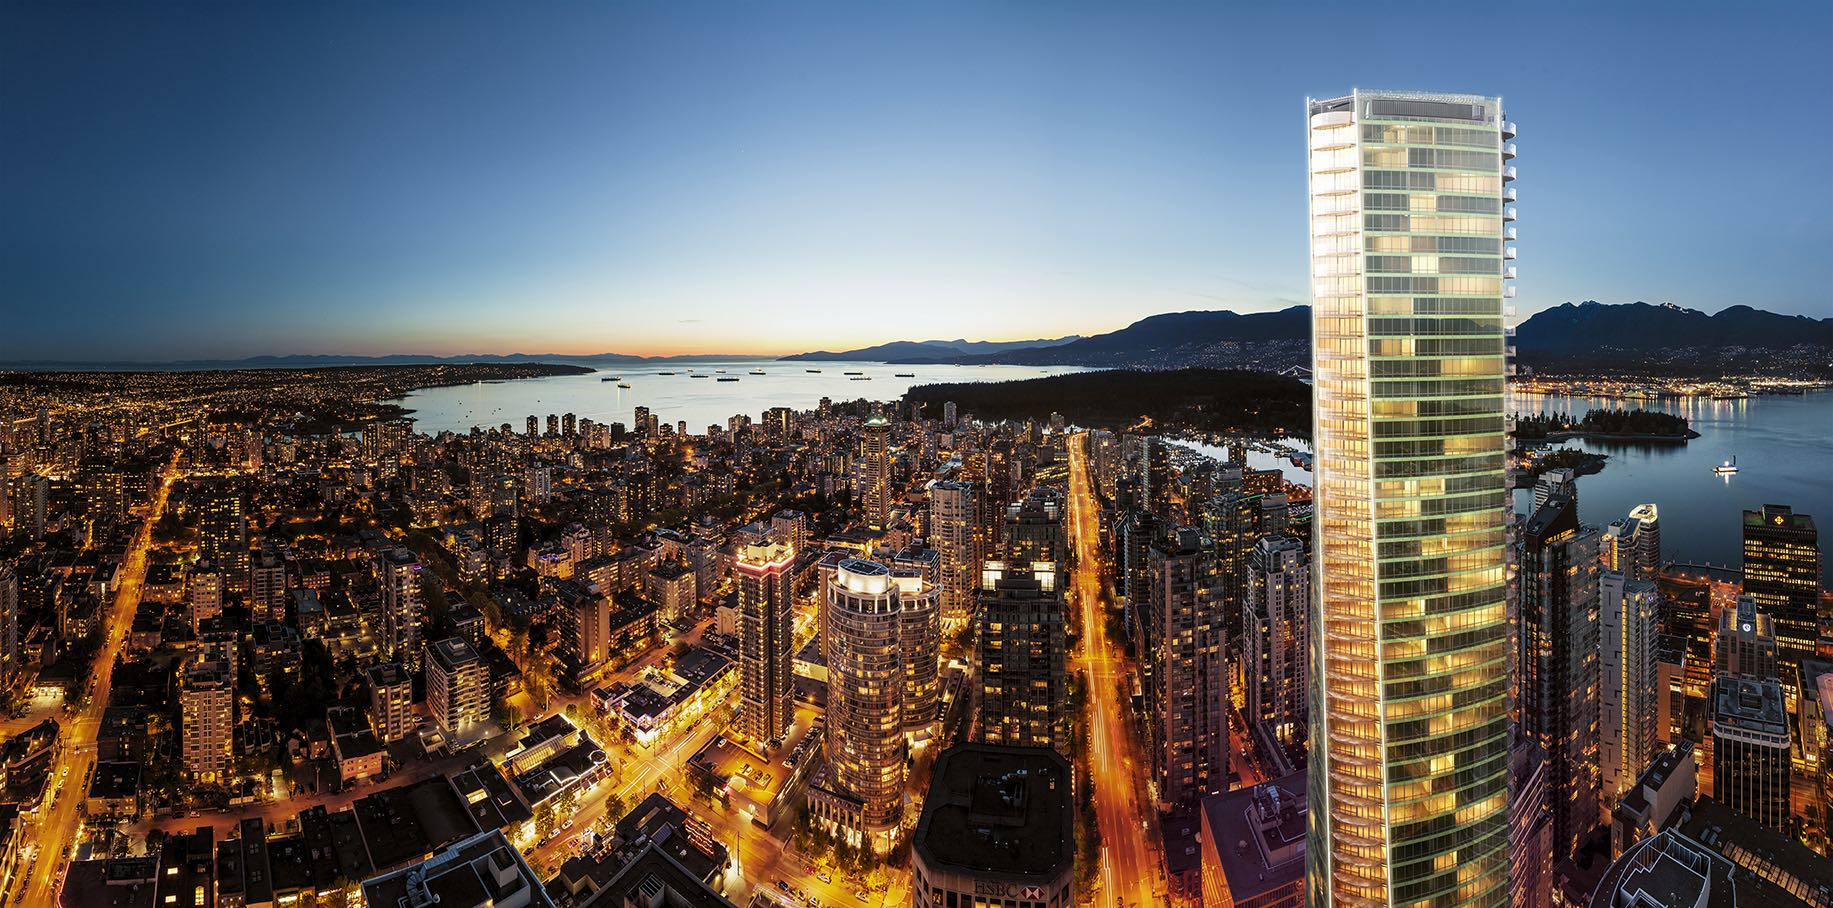 The Trump International Hotel and Tower Vancouver is the city's second tallest at 616 feet